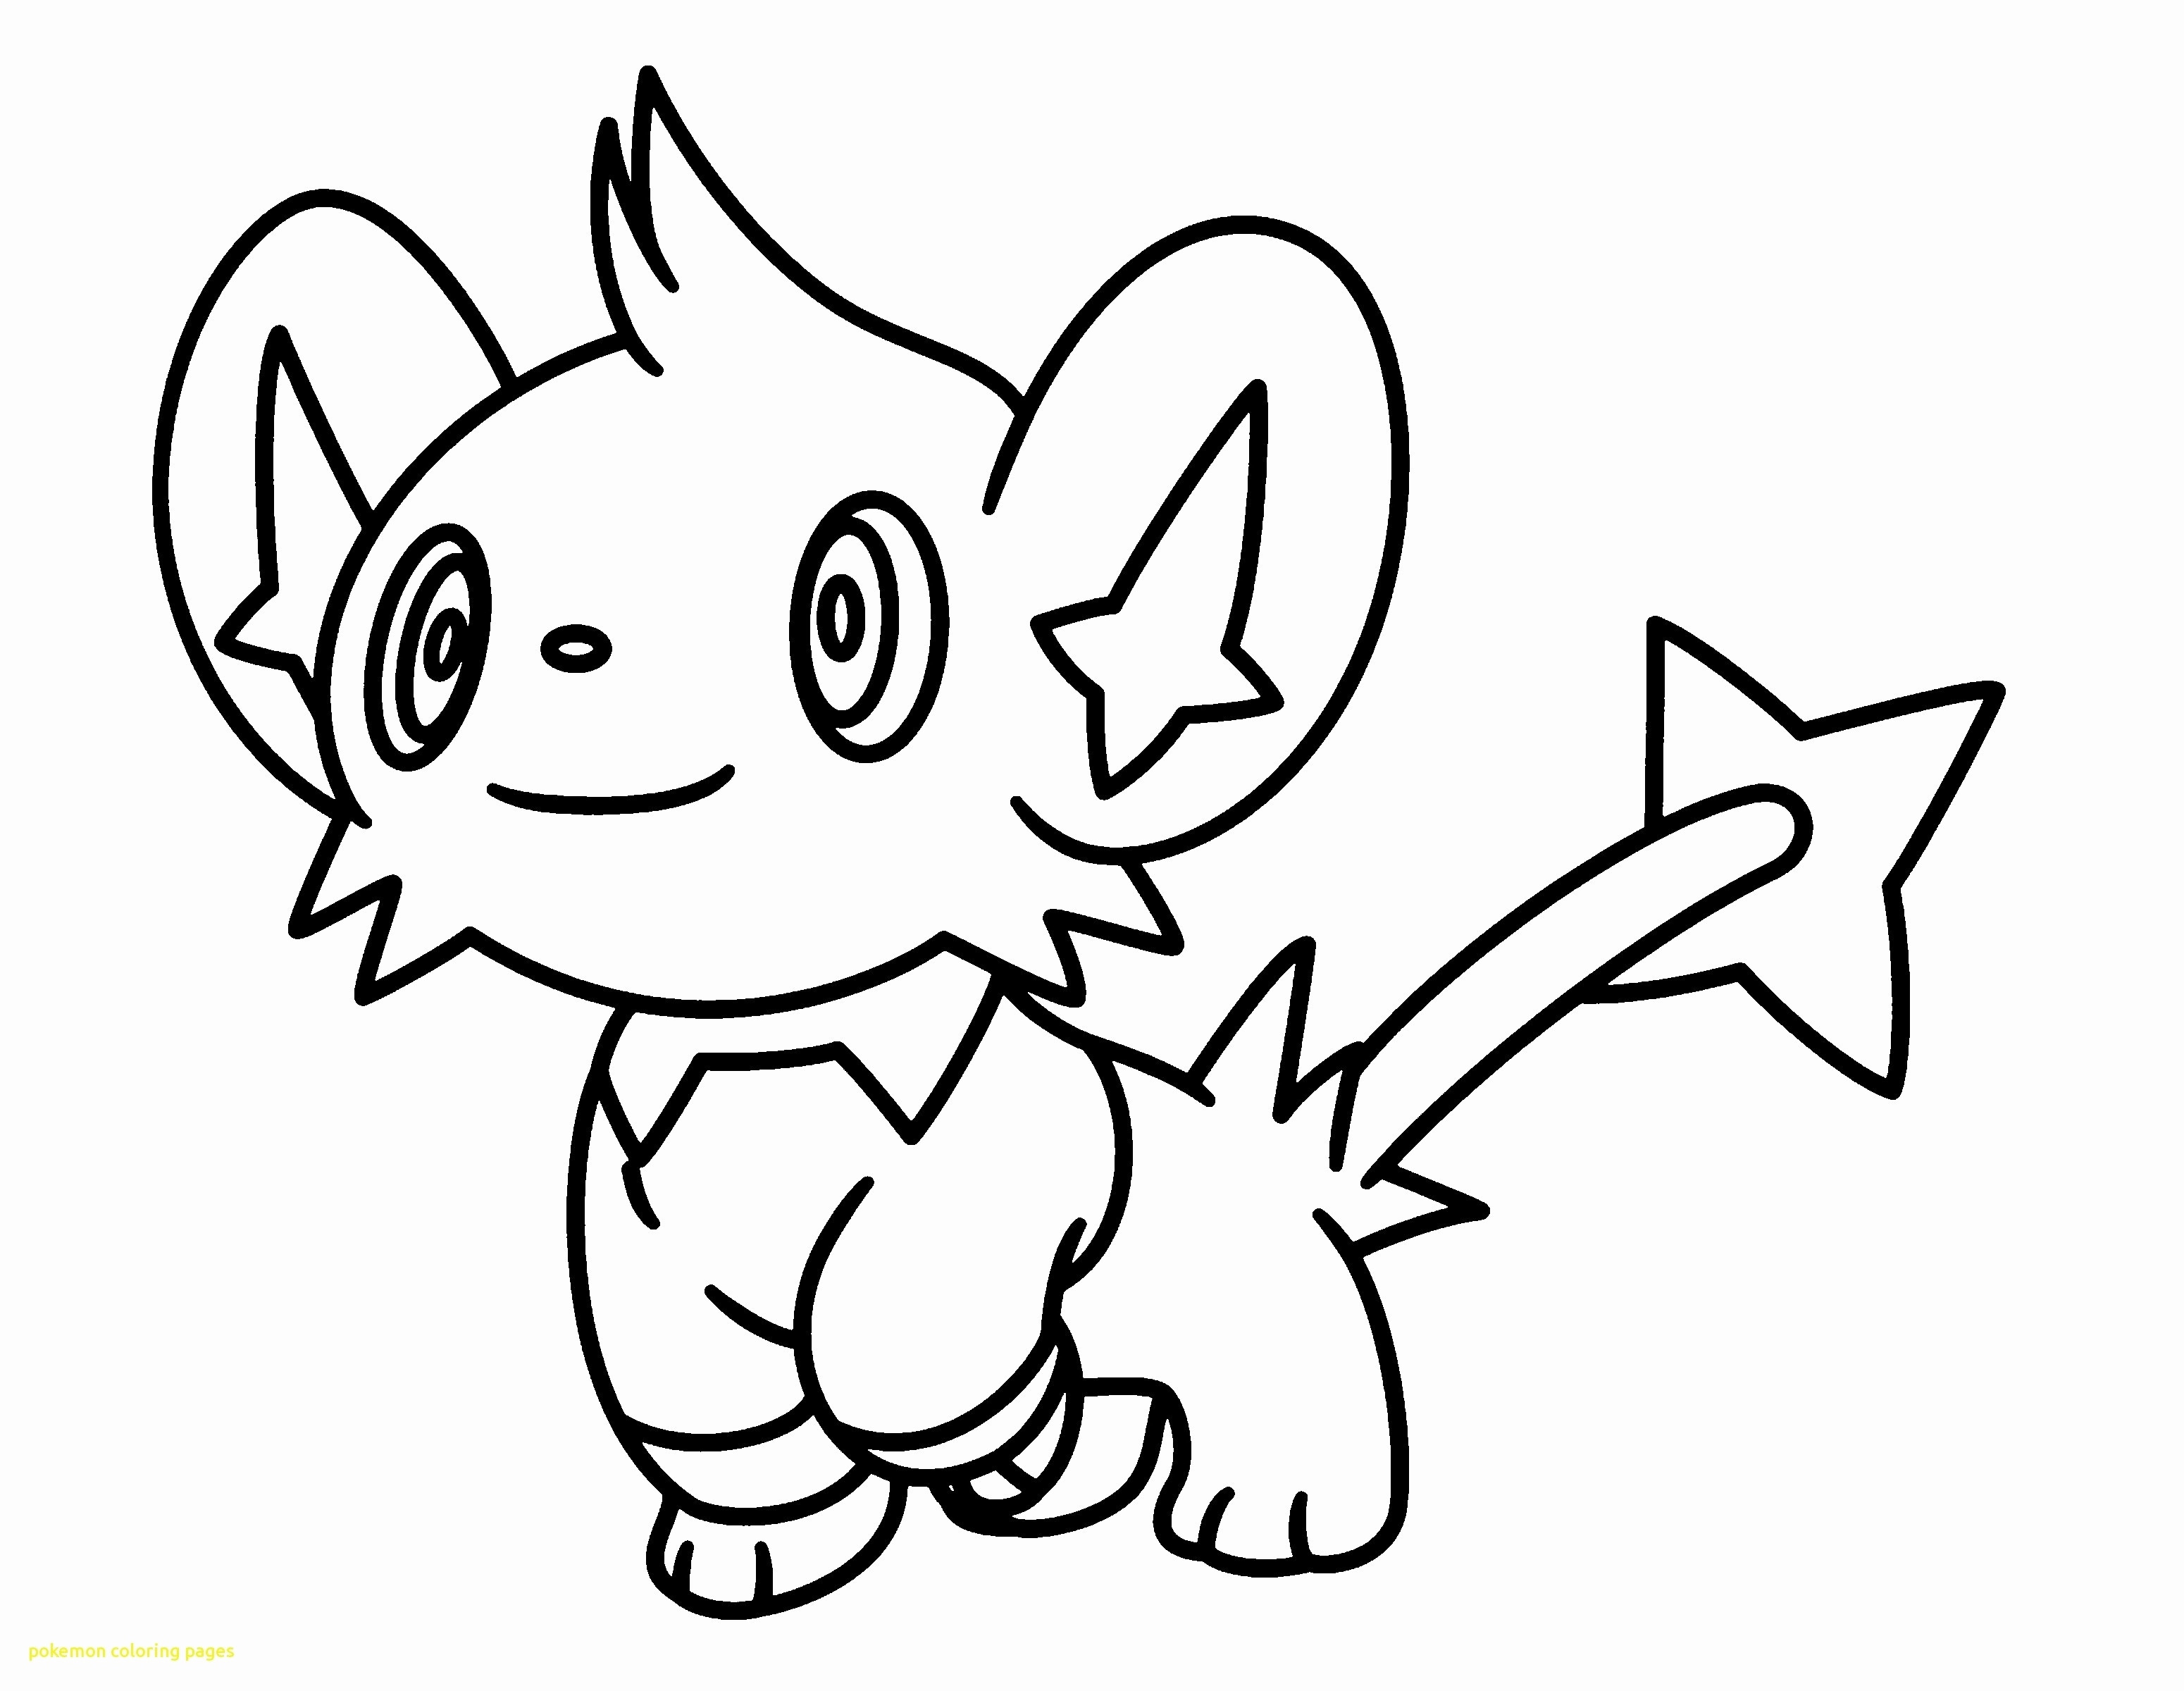 Pokemon Coloring Pages To Print Out For Free Unique Pokemon Coloring - Free Printable Pokemon Coloring Pages